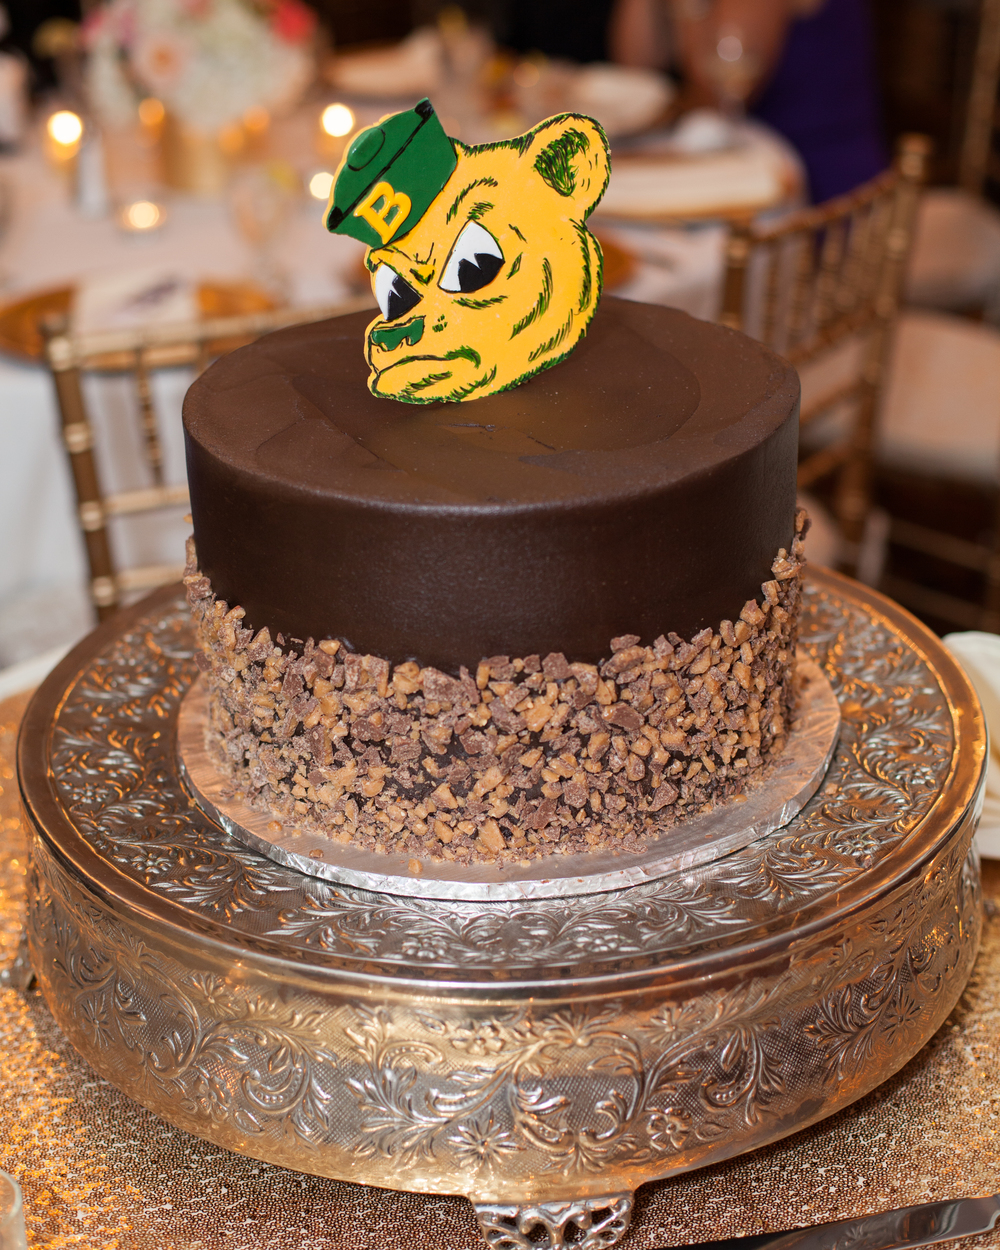 Baylor_toffee_crunch_cake_Sailor_Bear_sugarbeesweets.jpg